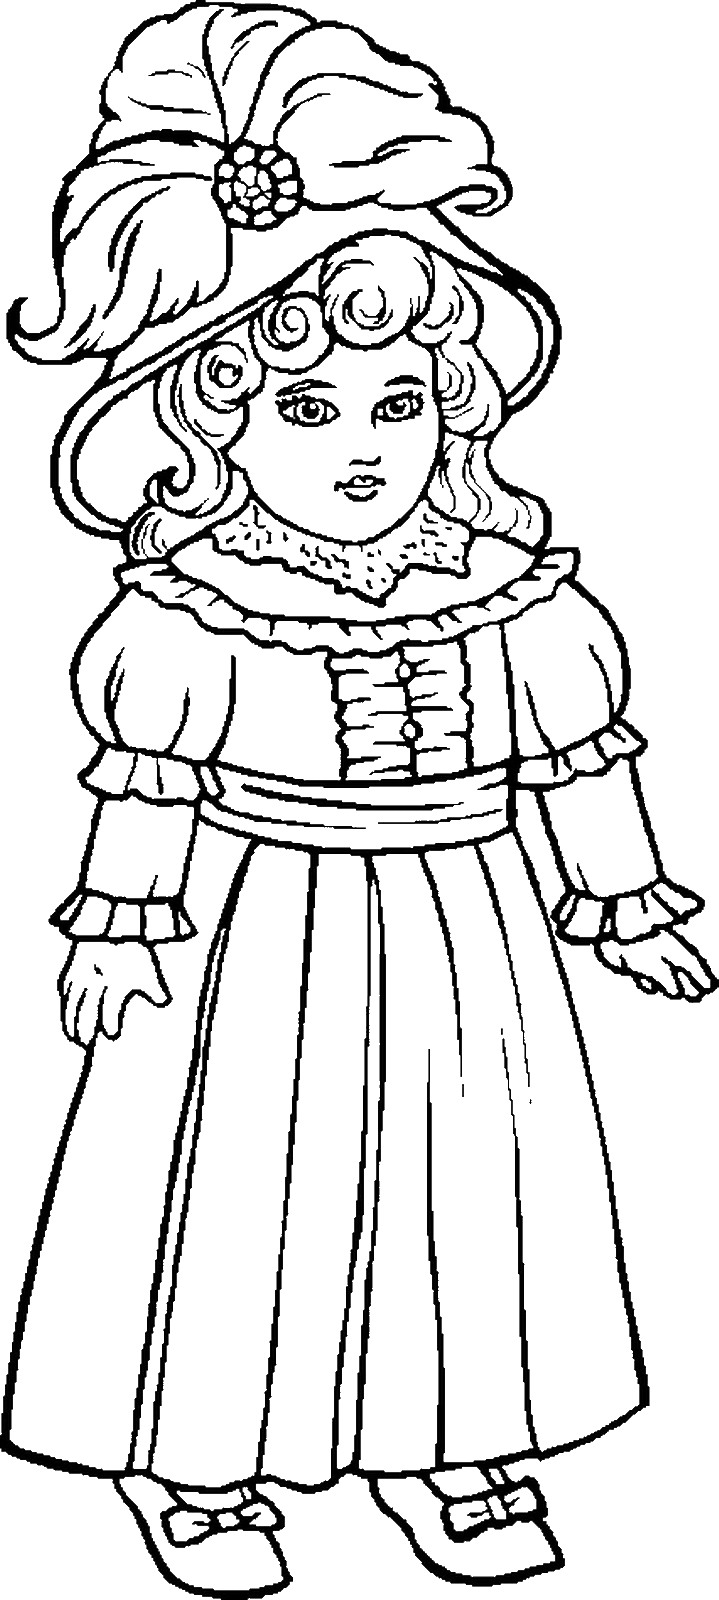 dolls pictures to colour in baby dolls ideas